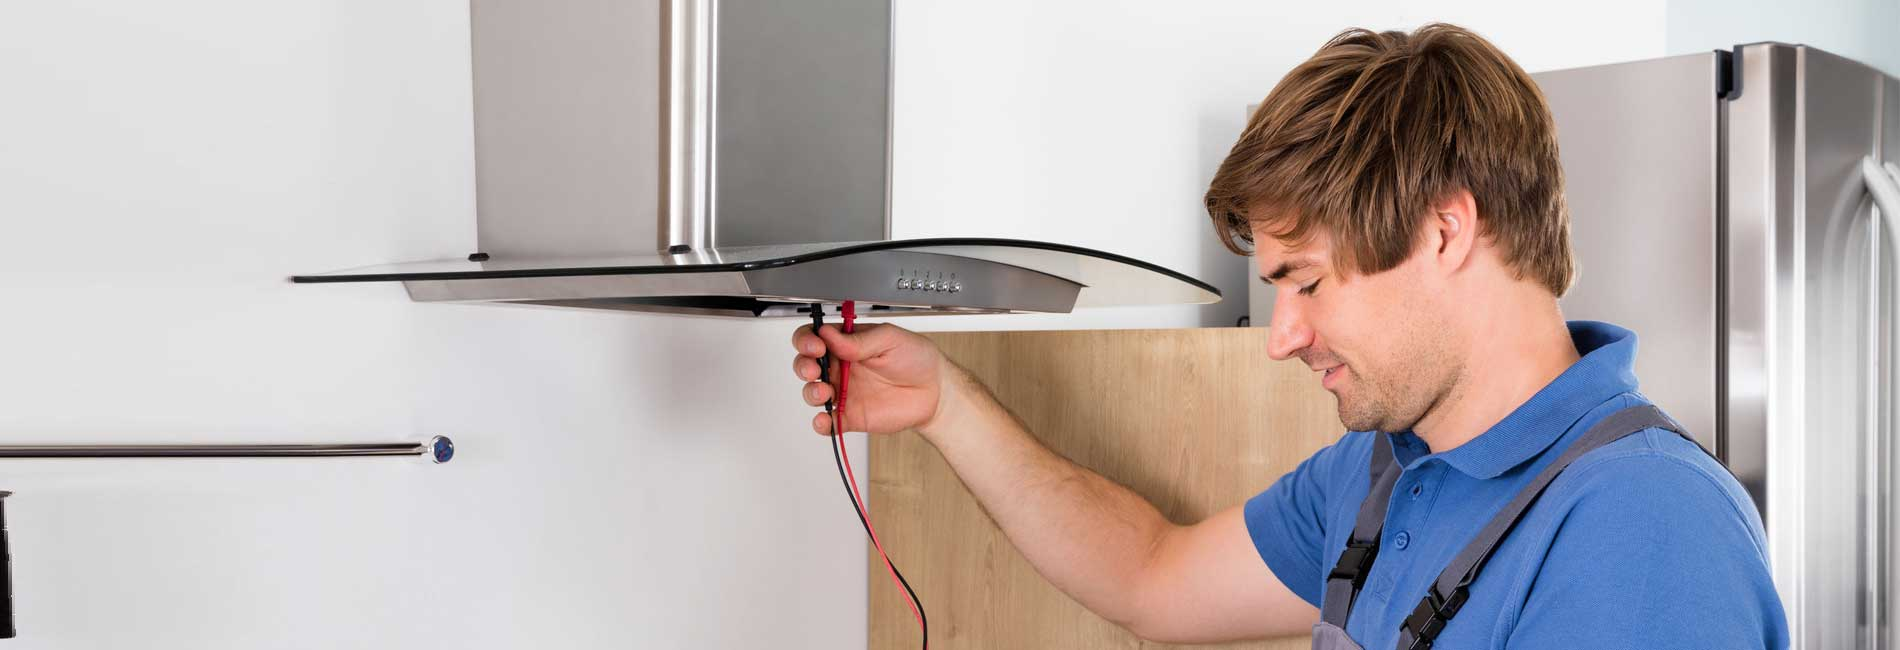 Hindware Chimney Repair in Ashok Nagar